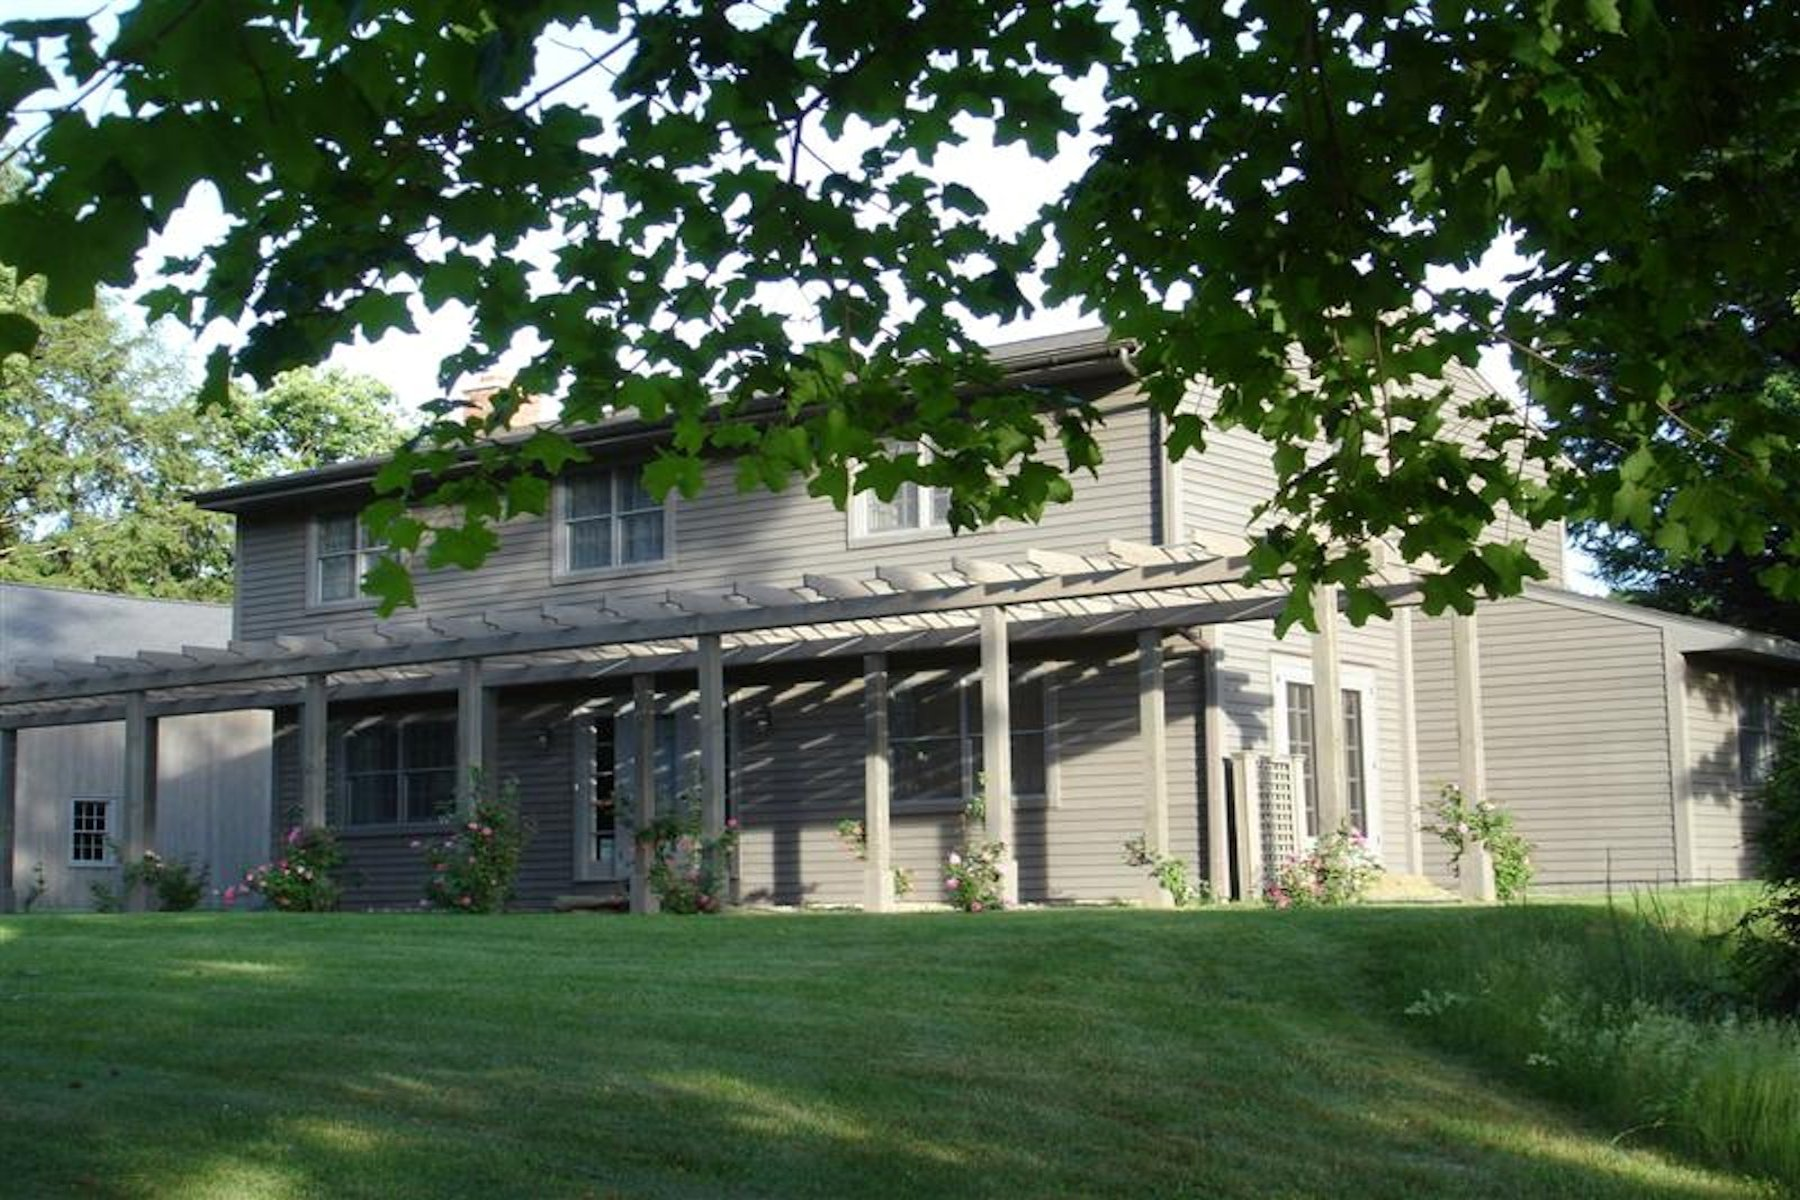 Single Family Home for Rent at Field House 116 Canoe Hill Road Millbrook, New York 12545 United States